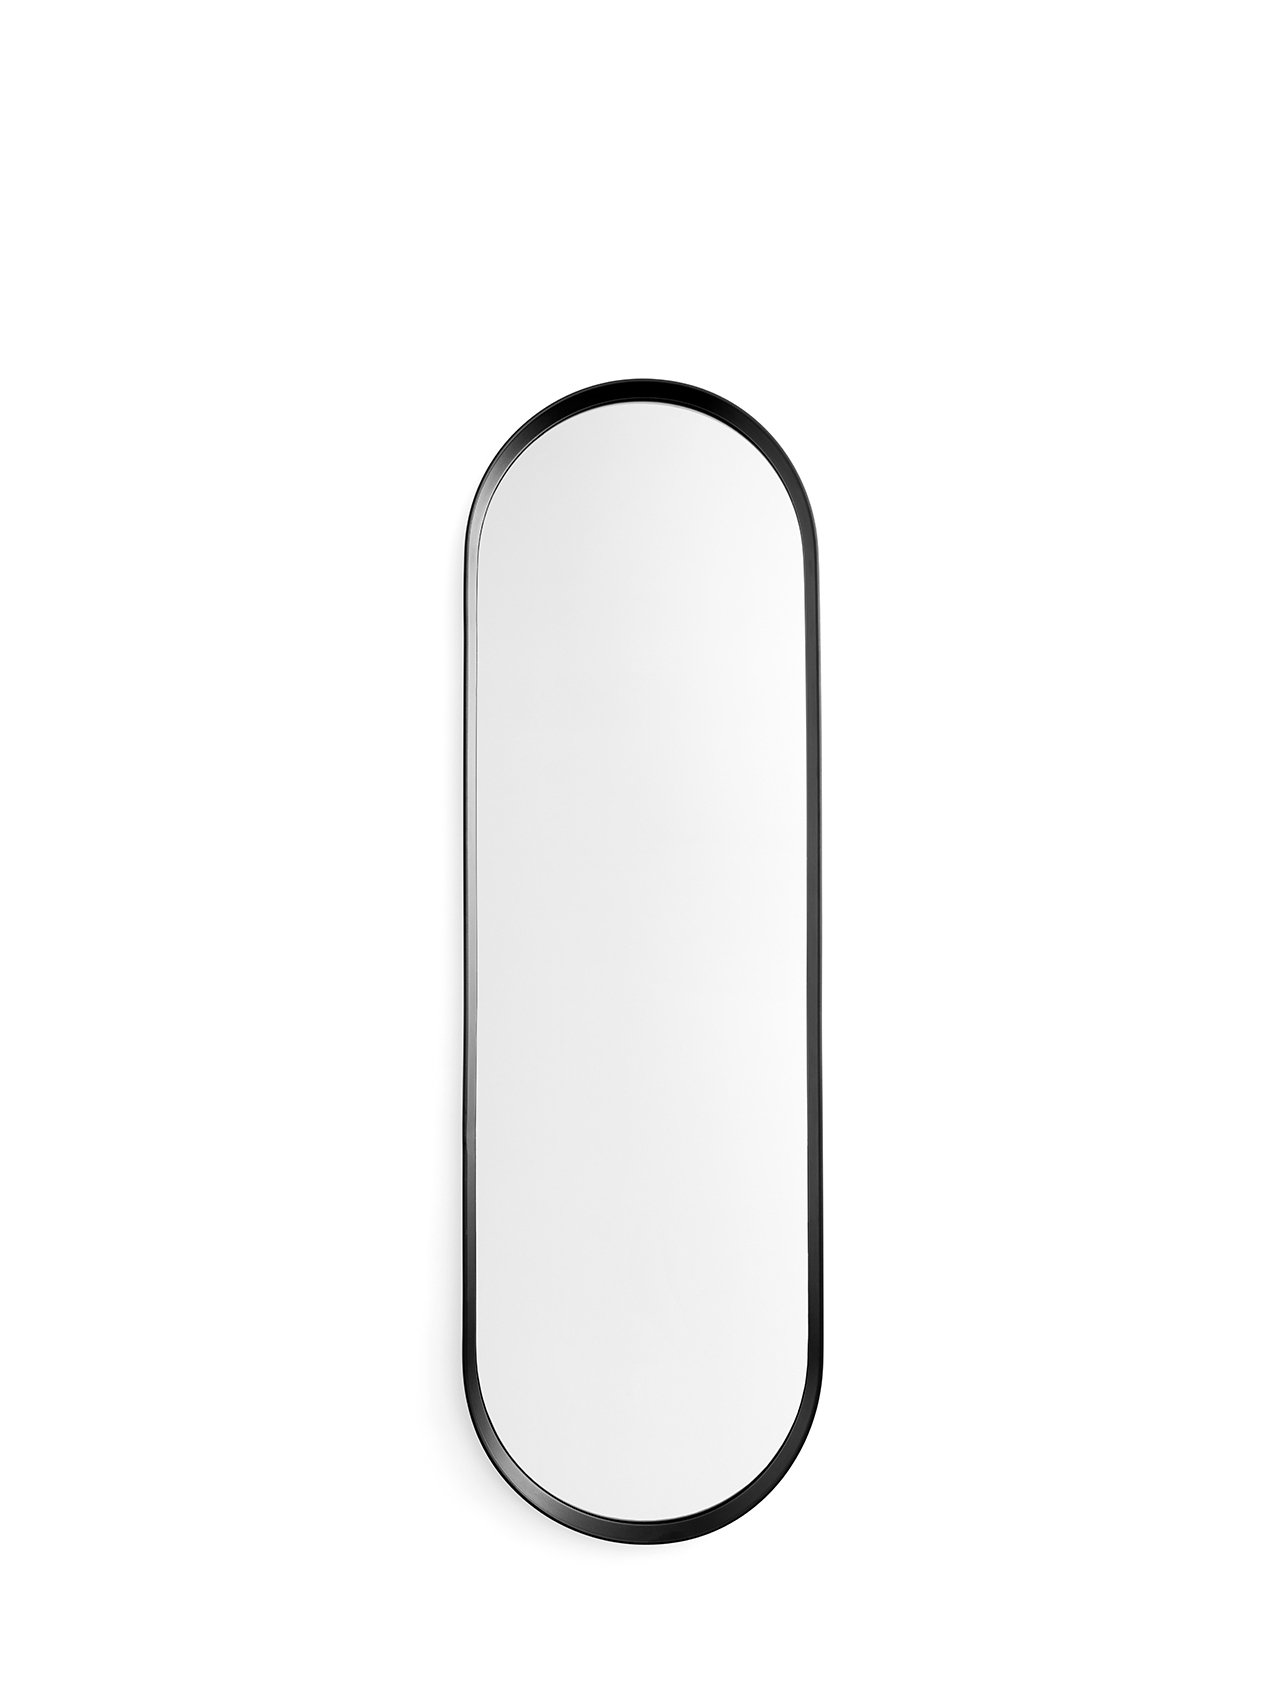 Norm Wall Mirror, Oval, Black – Mirrors – Large – Furniture – Shop In Famous Black Oval Wall Mirrors (View 10 of 20)